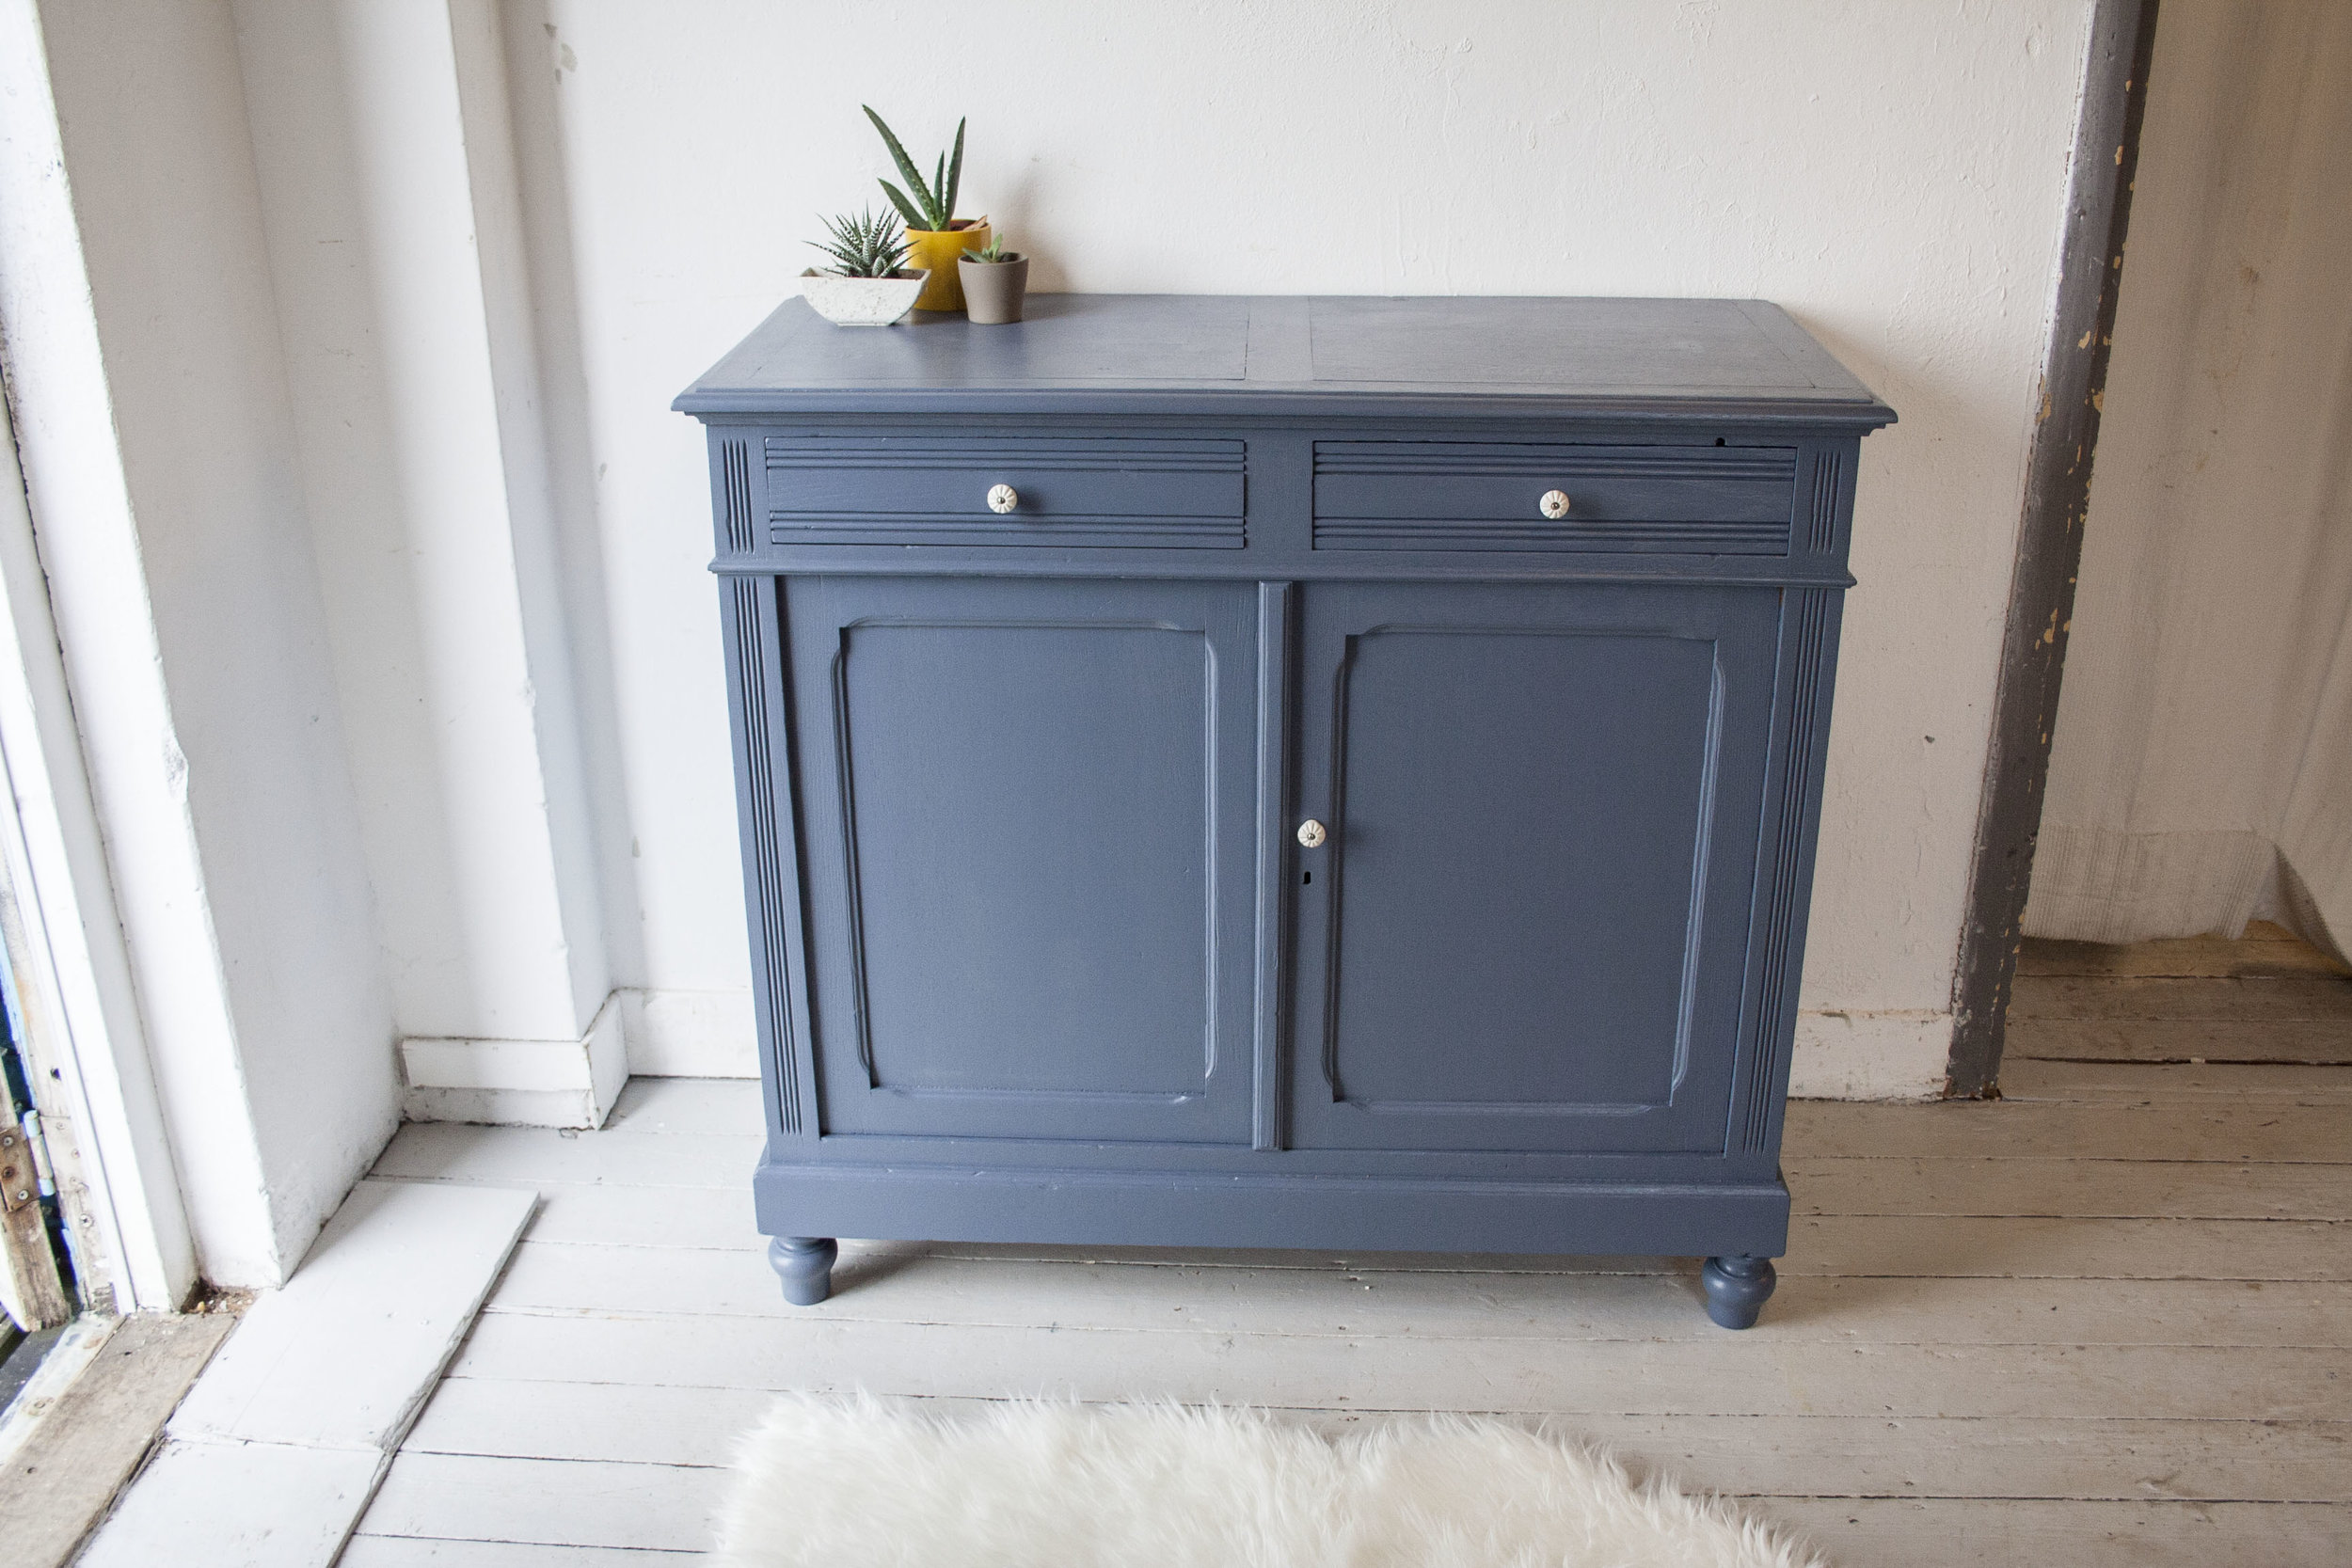 Denim blauwe vintage commode.jpg